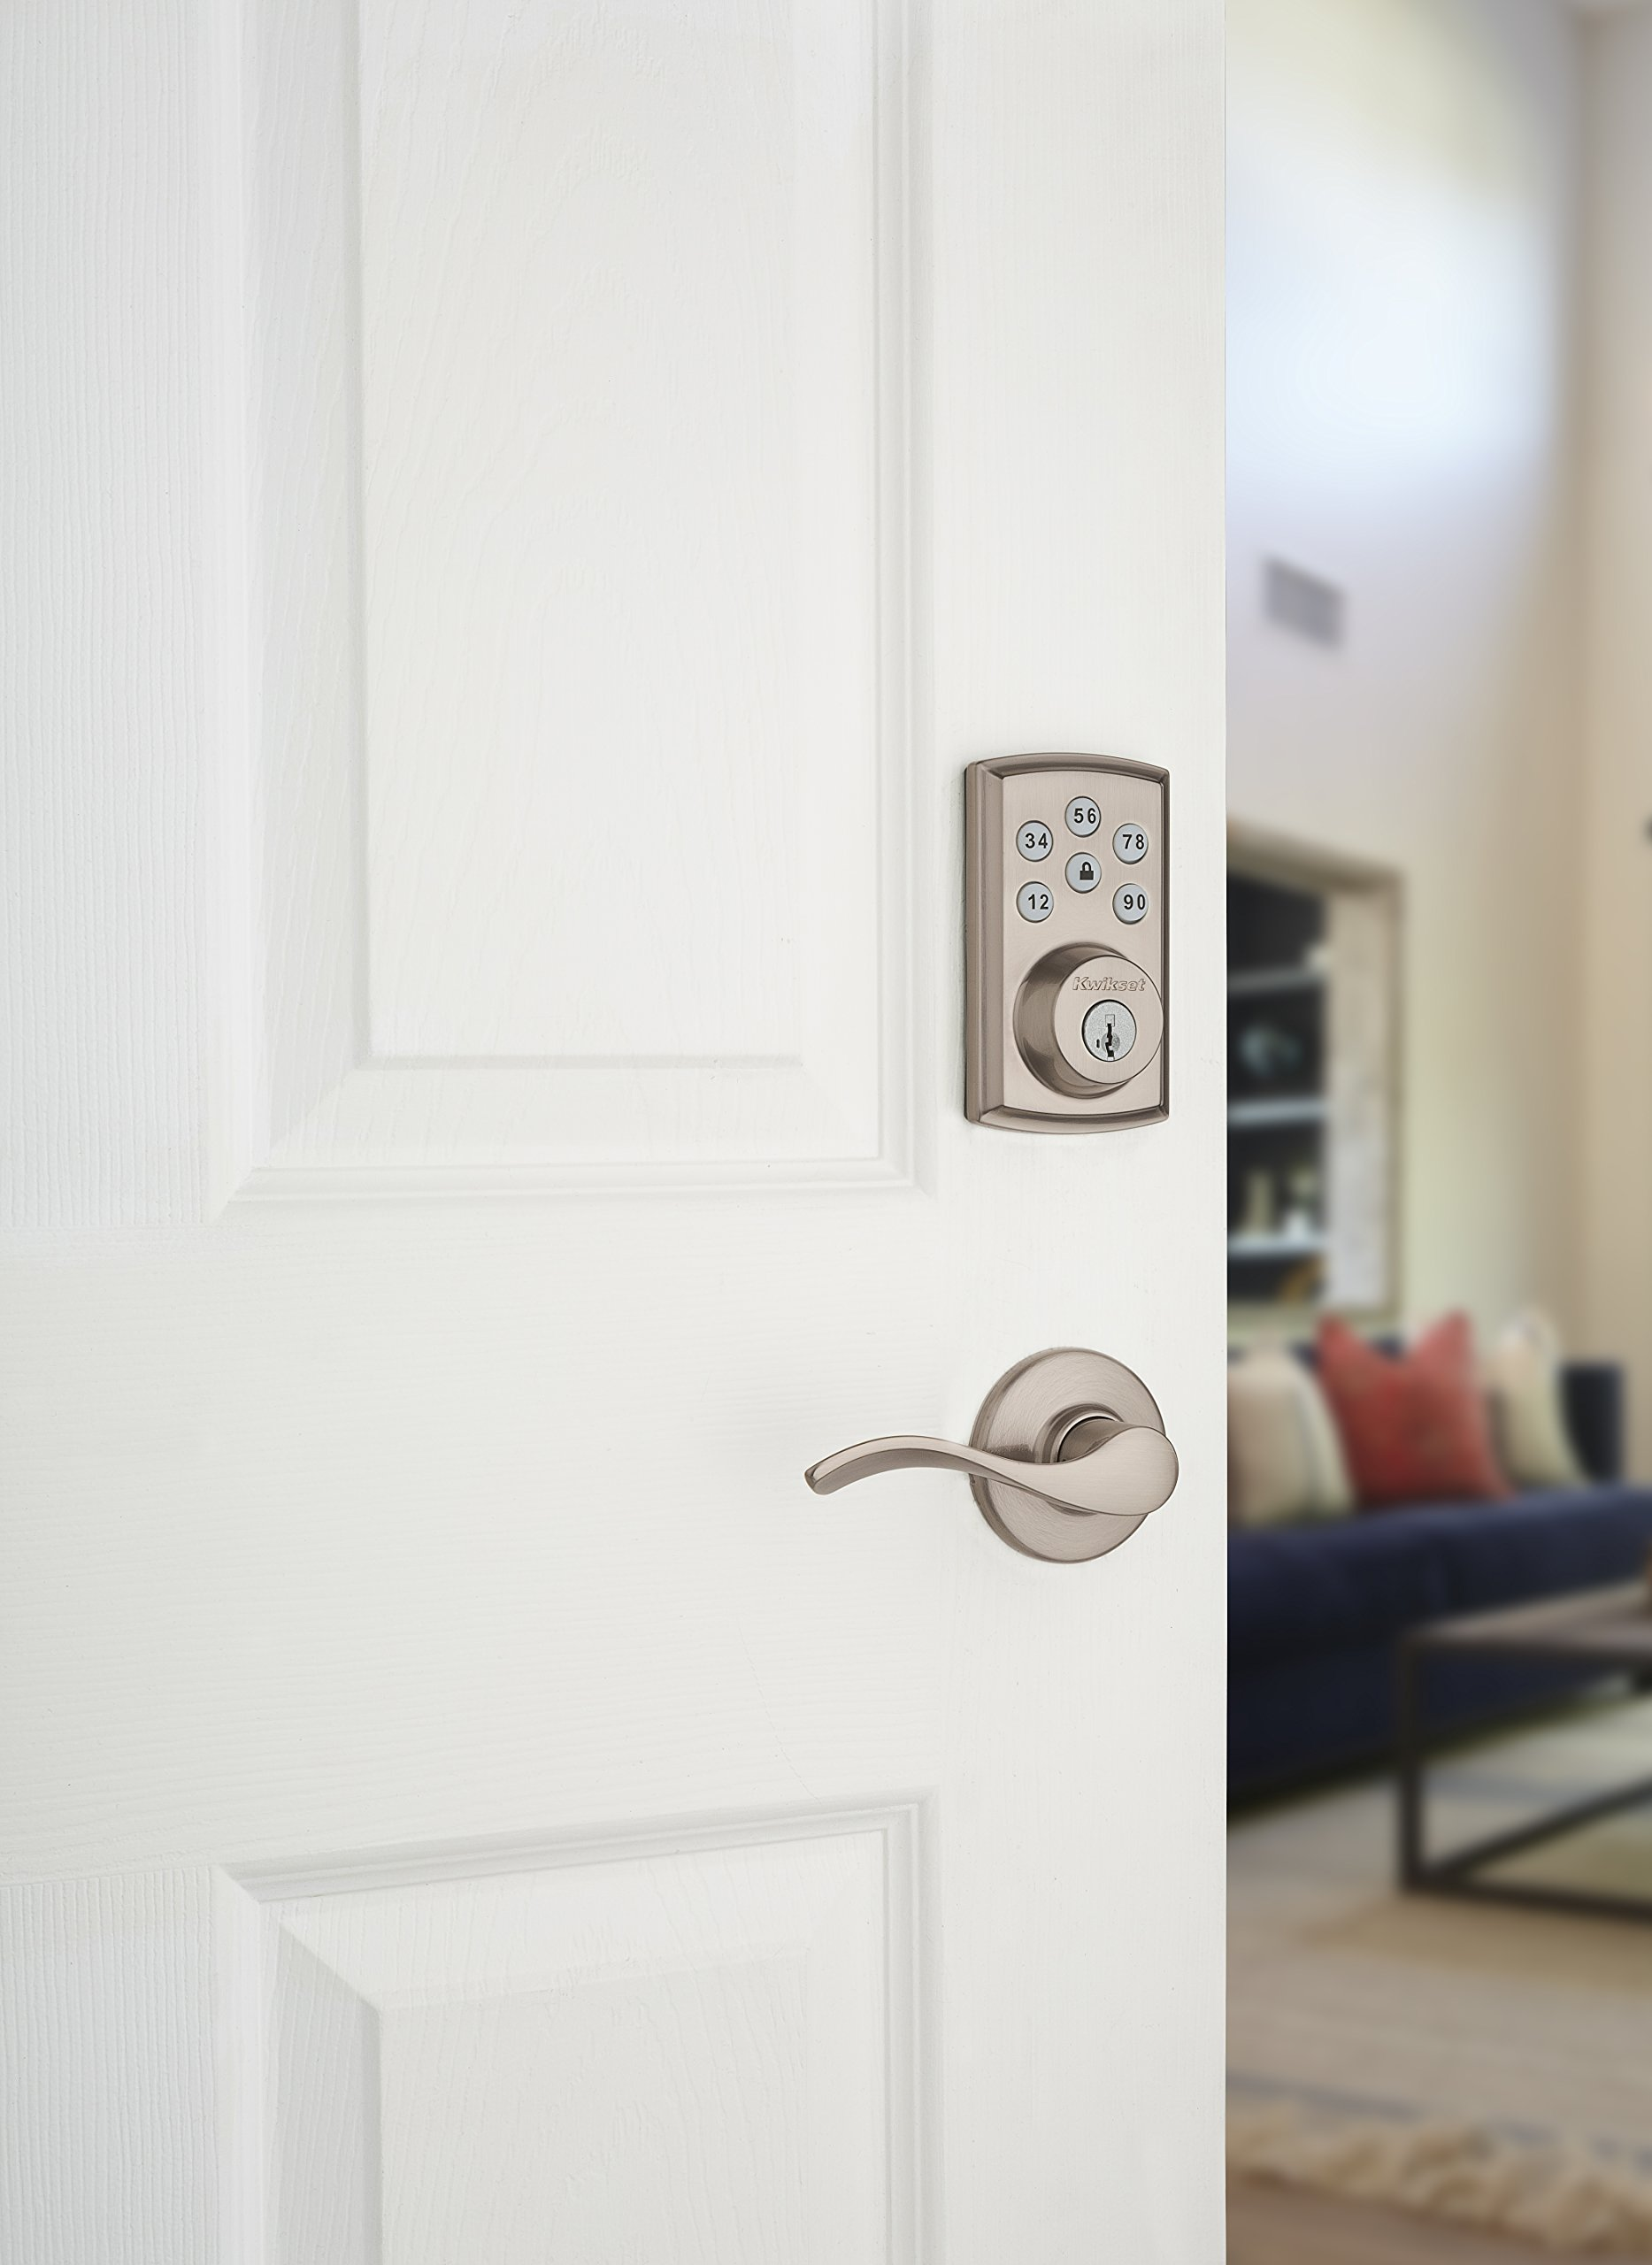 Kwikset 888ZW500-15S Smartcode 888 Electronic Deadbolt with Z-Wave Technology by Kwikset (Image #5)